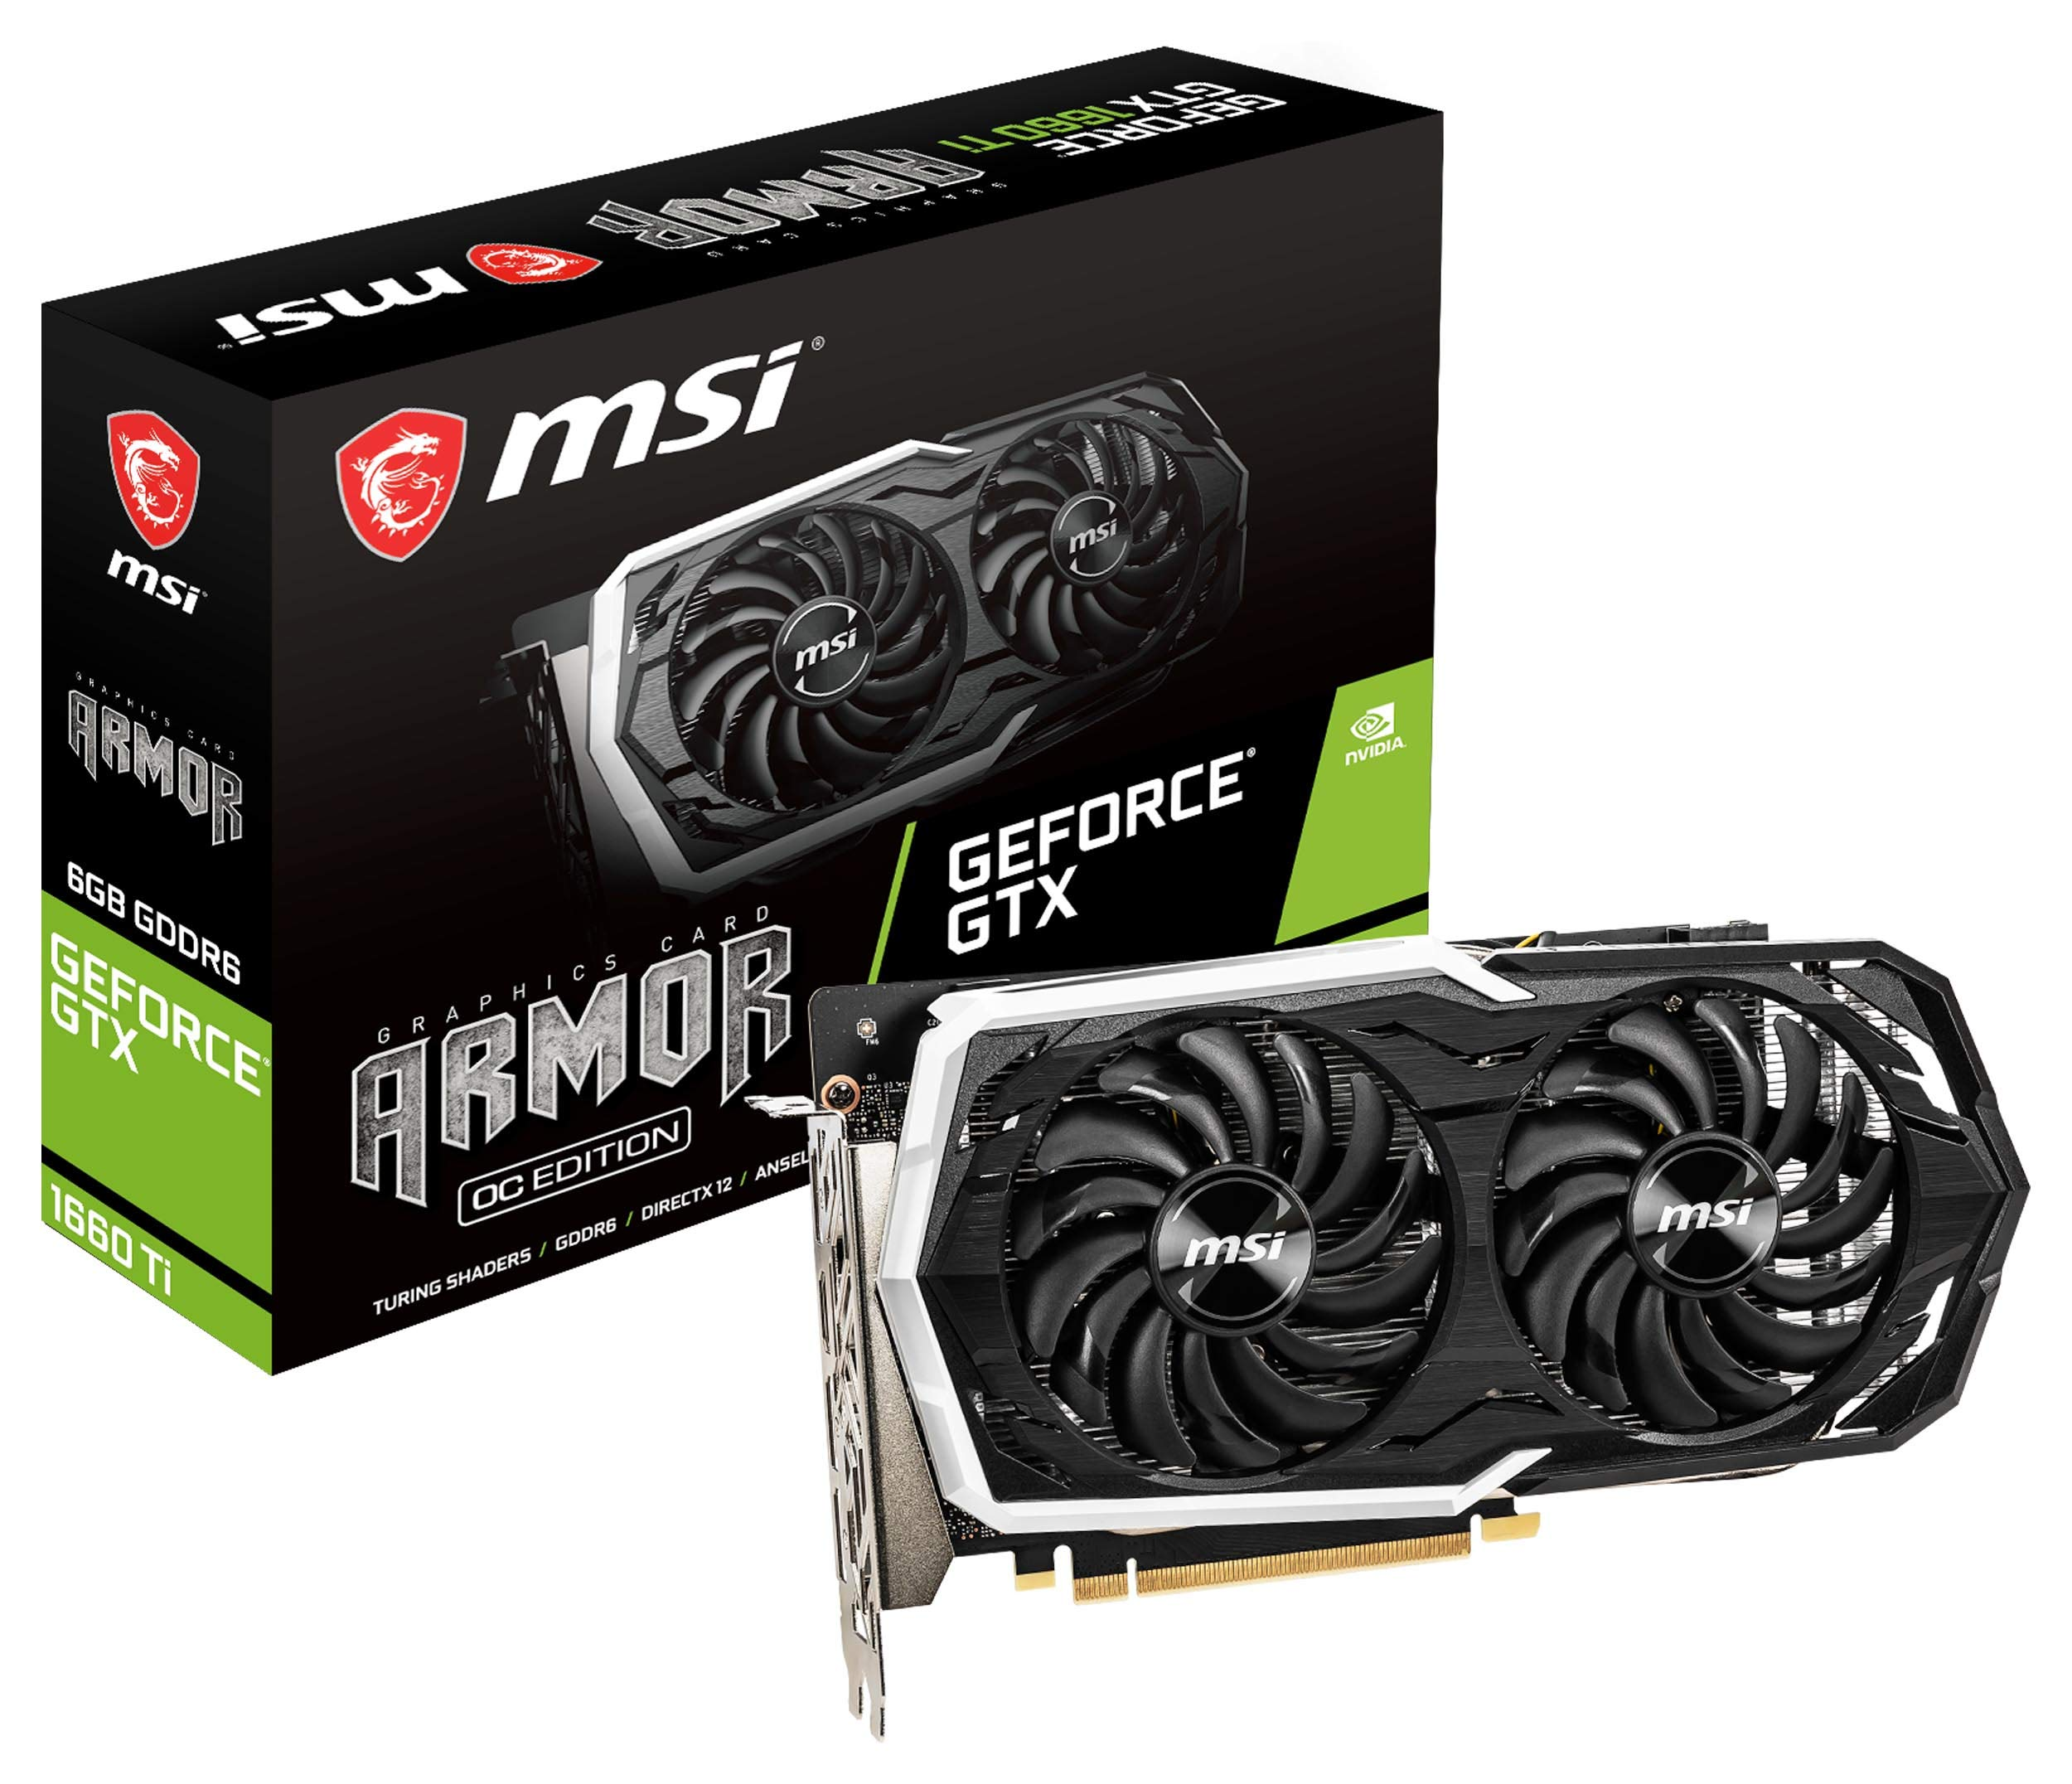 MSI Gaming GeForce GTX 1660 Ti 192-bit HDMI/DP 6GB GDRR6 HDCP Support DirectX 12 Dual Fan VR Ready OC Graphics Card (GTX 1660 TI Armor 6G OC)